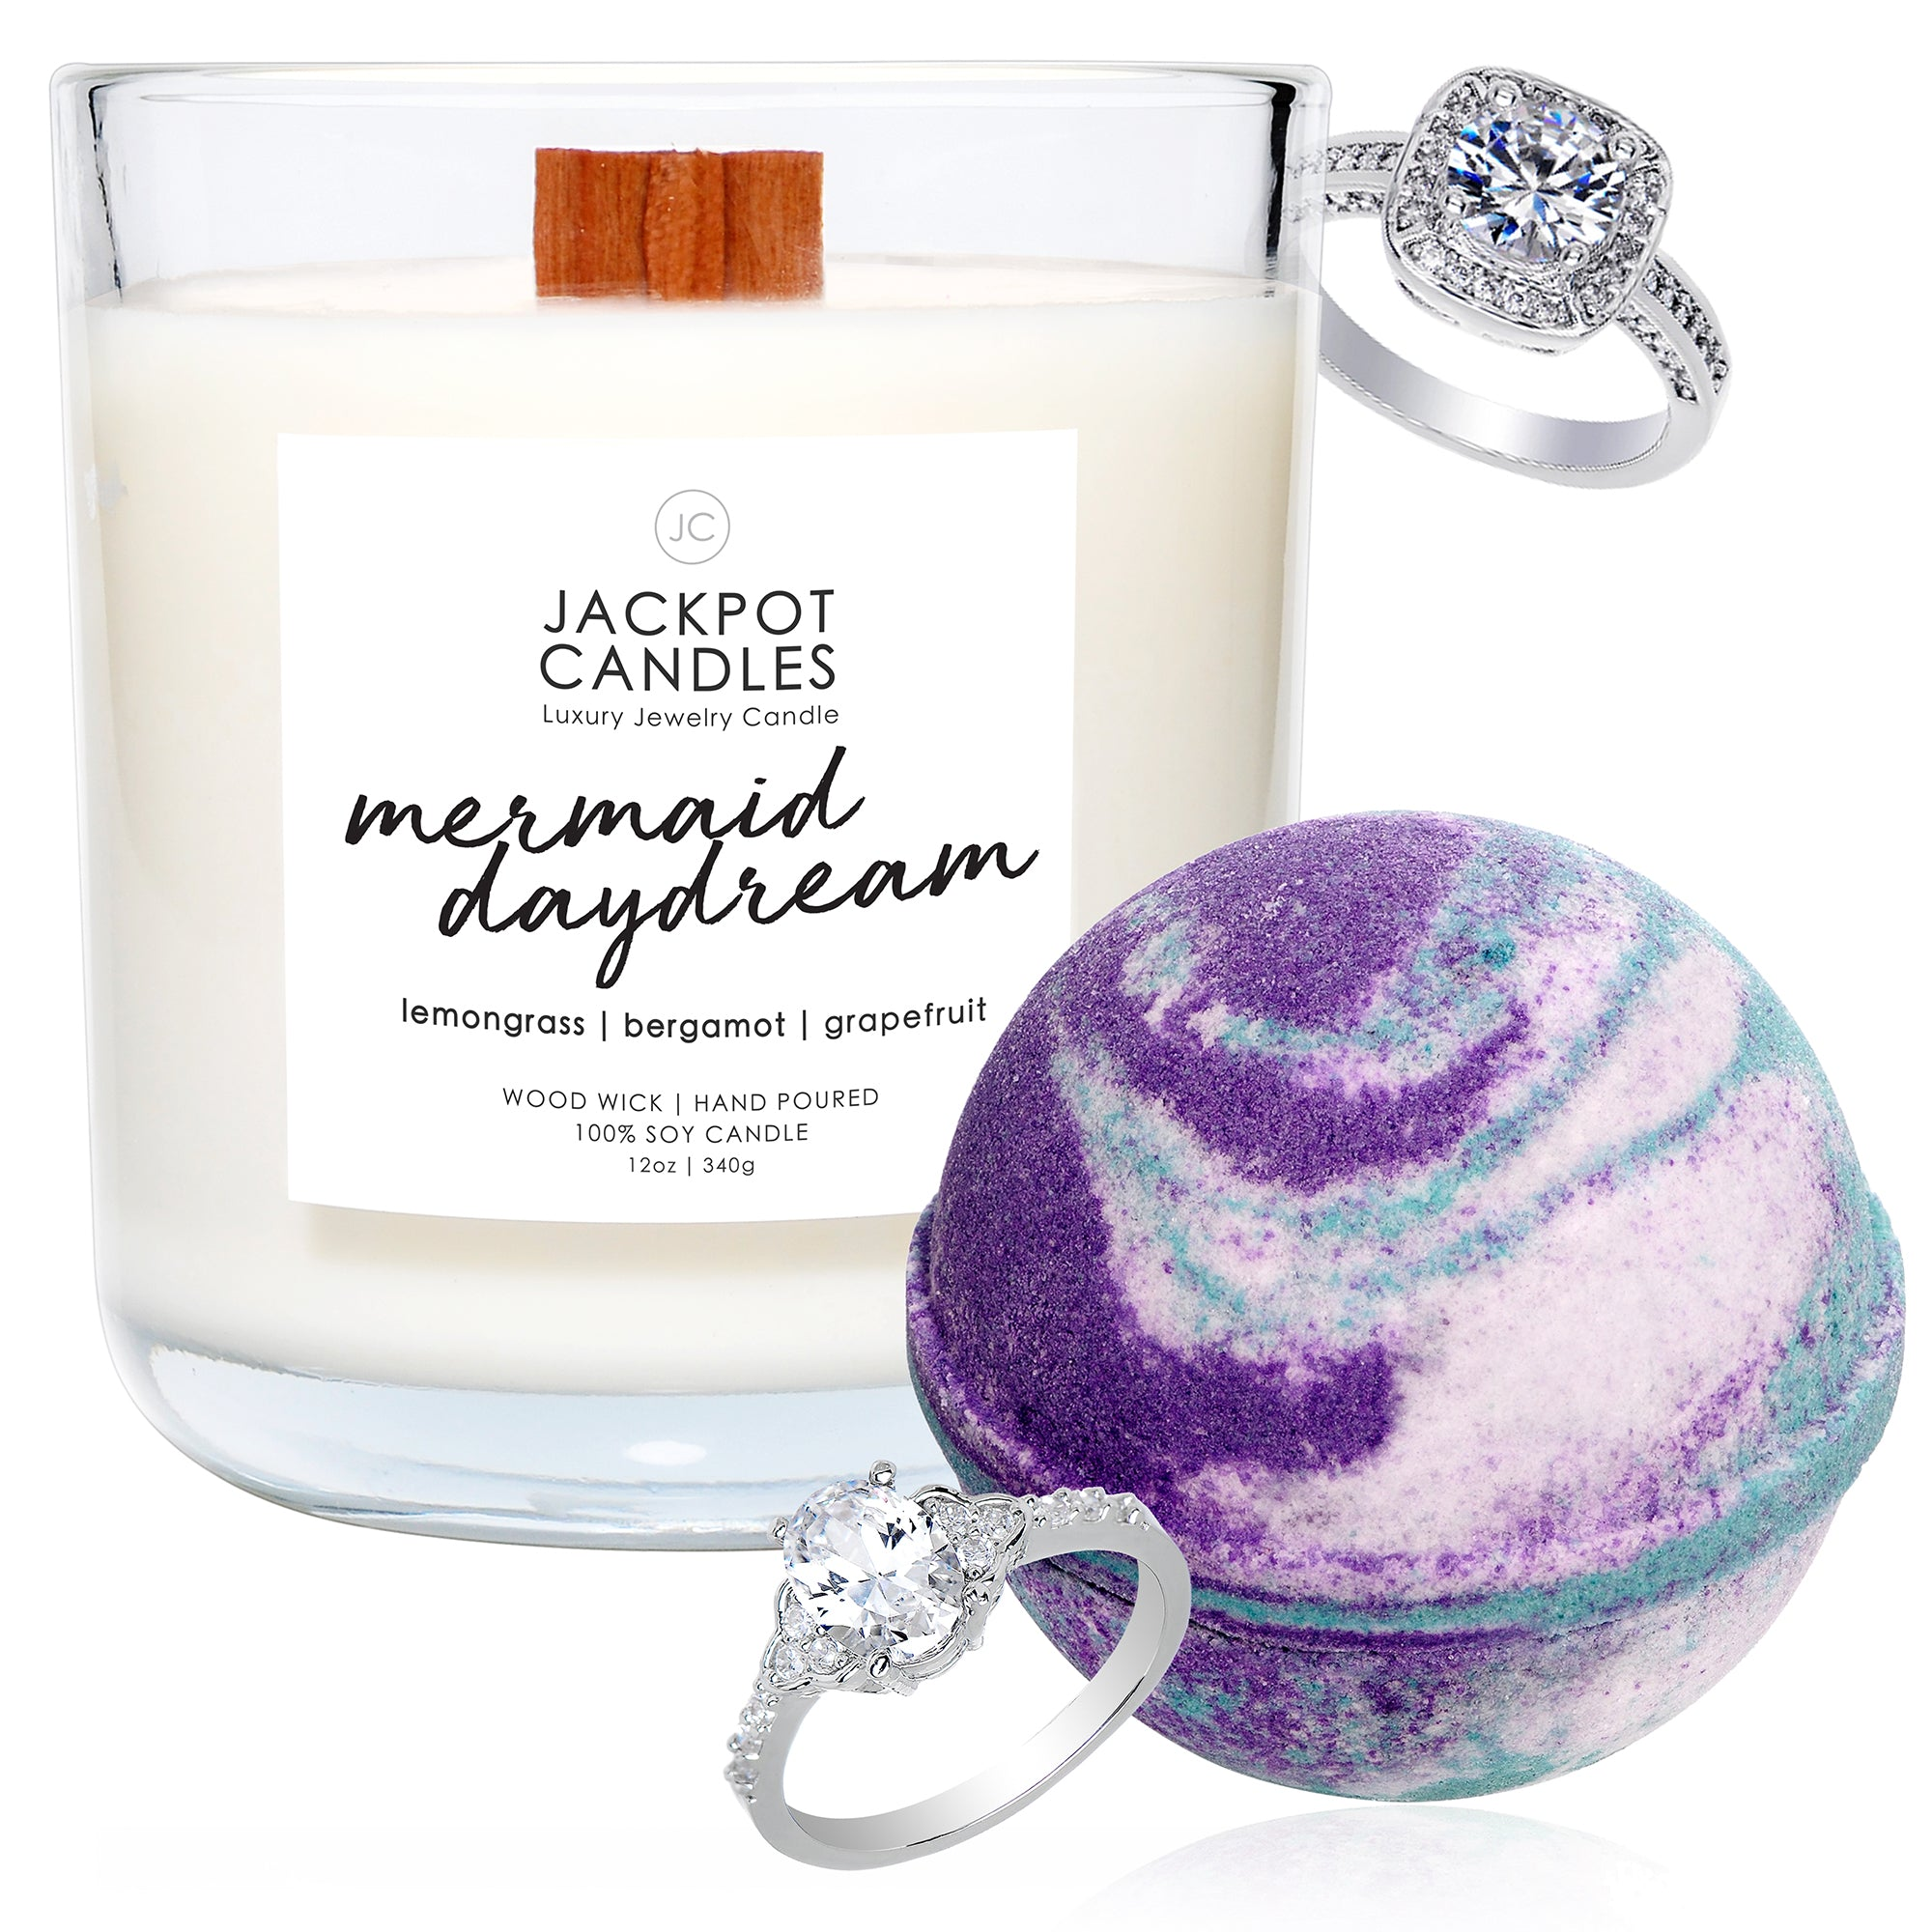 Mermaid Daydream Wooden Wick Candle & Bath Bomb Gift Set